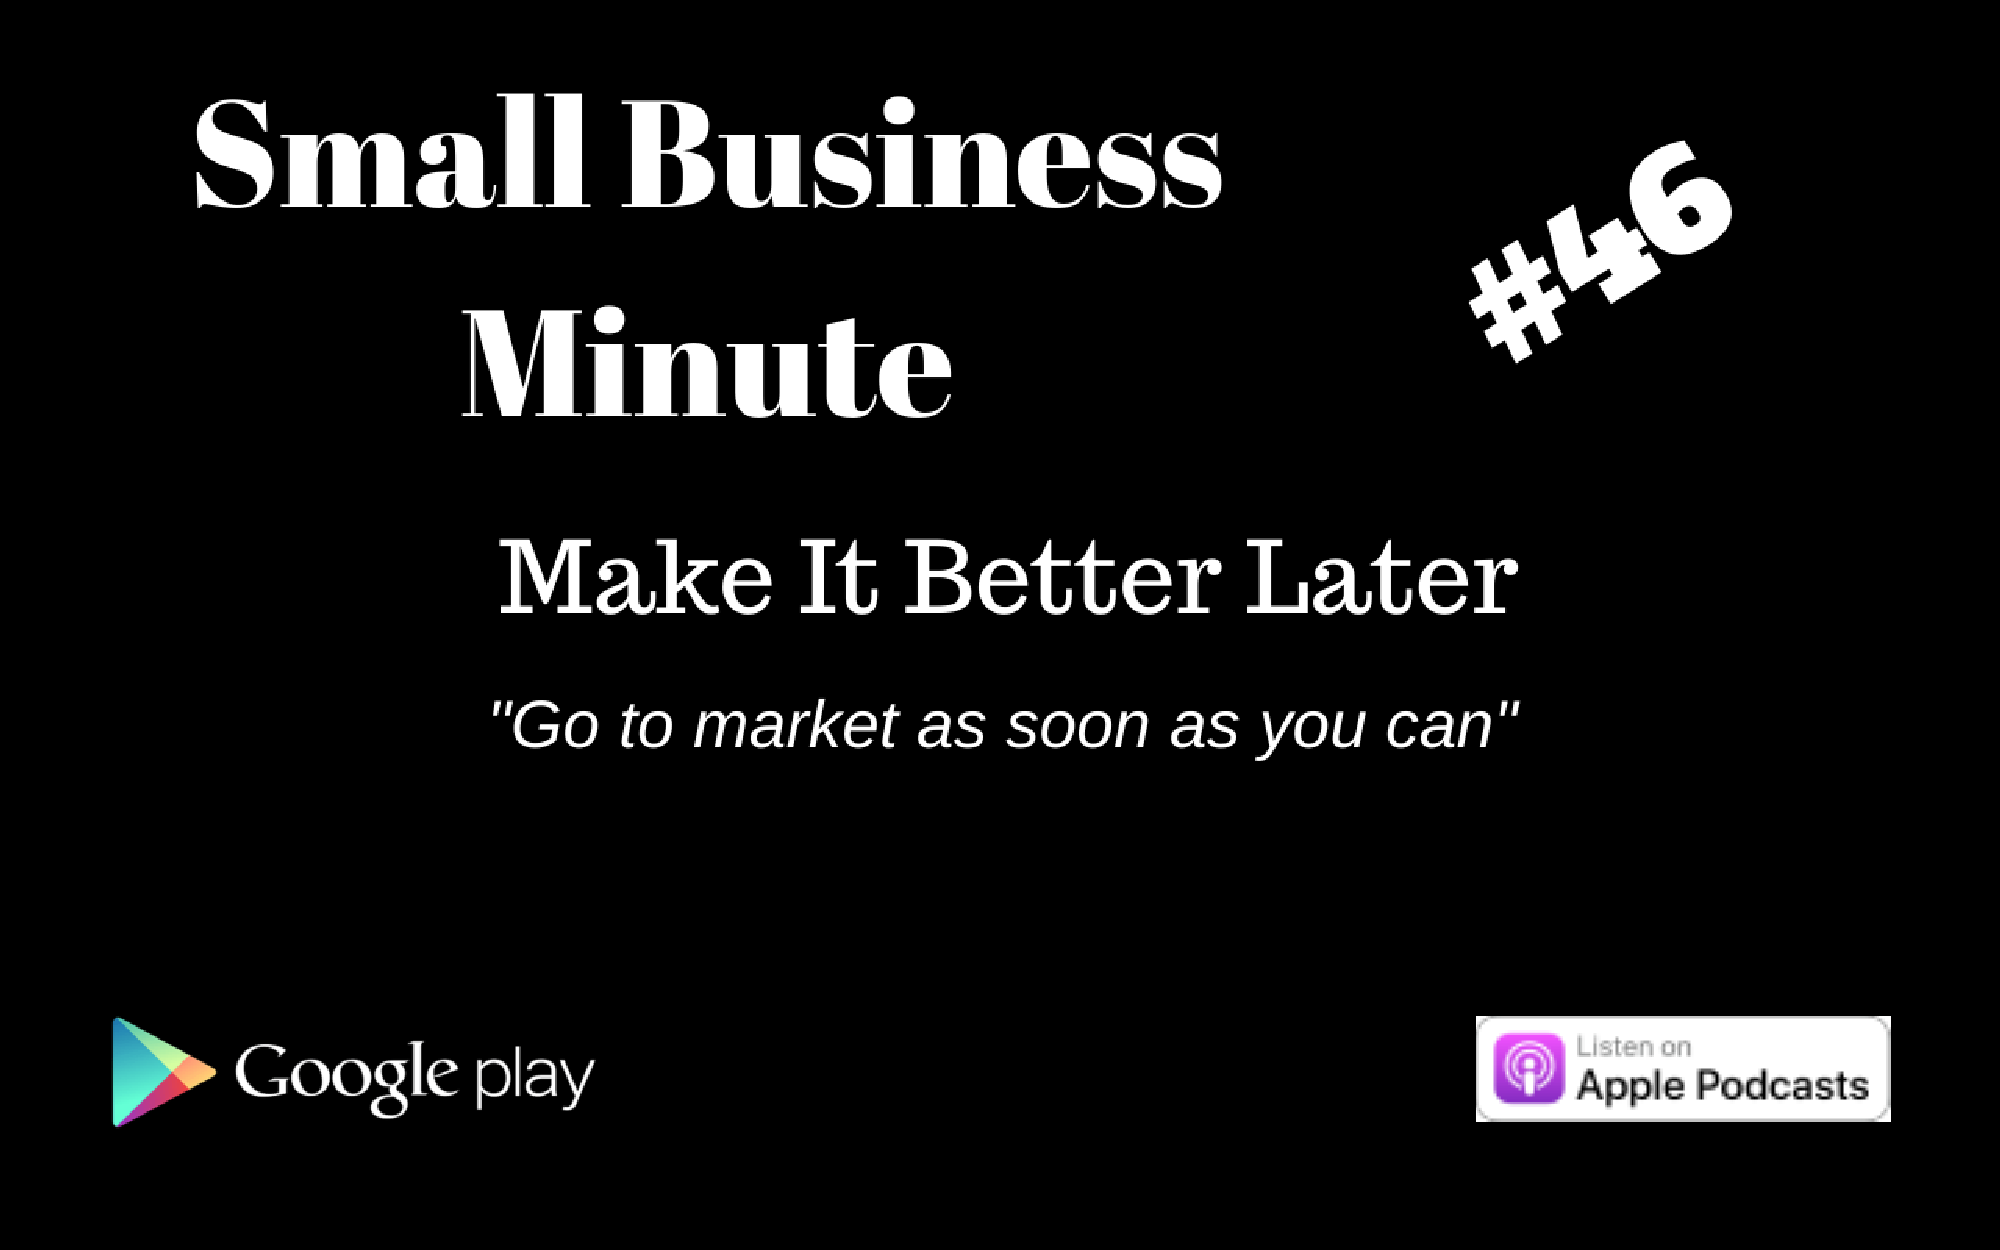 Small Business Minute #46 Make It Better Later